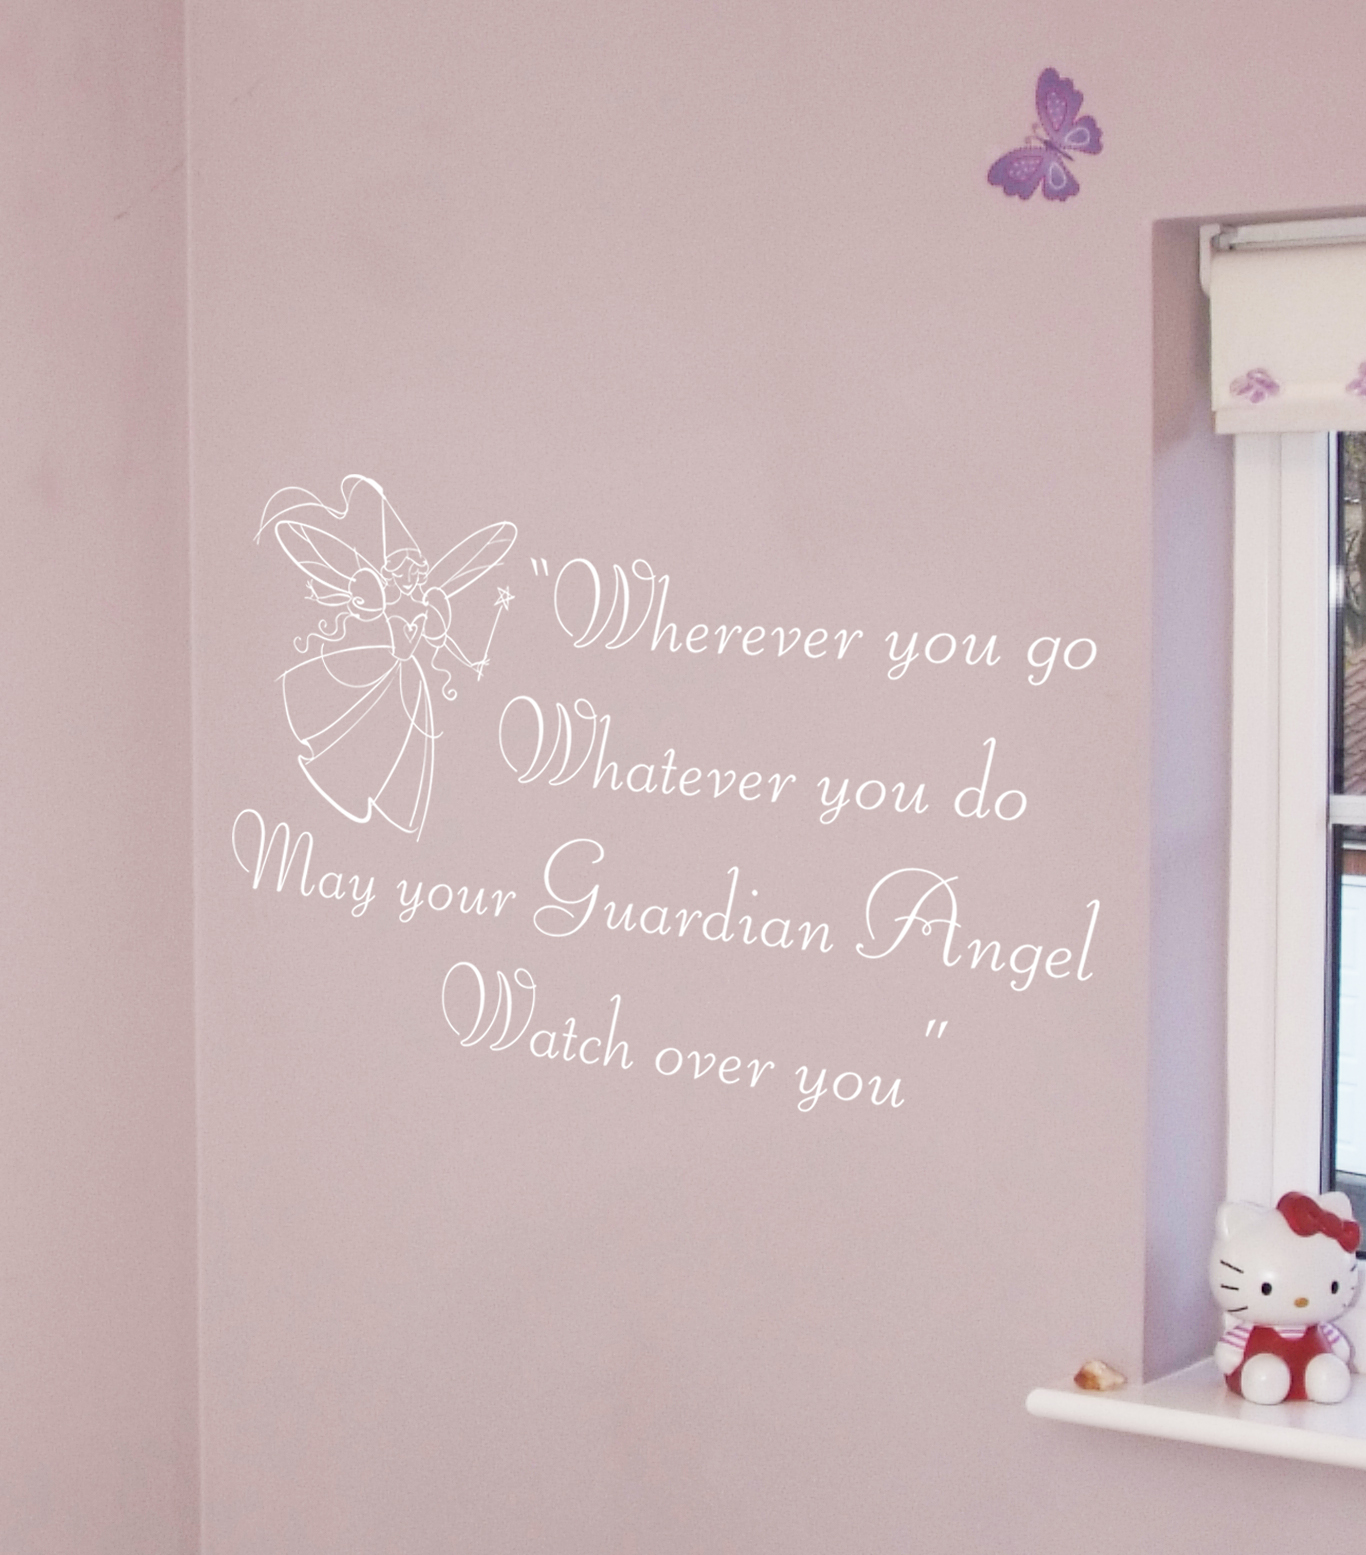 Baby Guardian Angel Quotes: Grandma Angel Quotes. QuotesGram